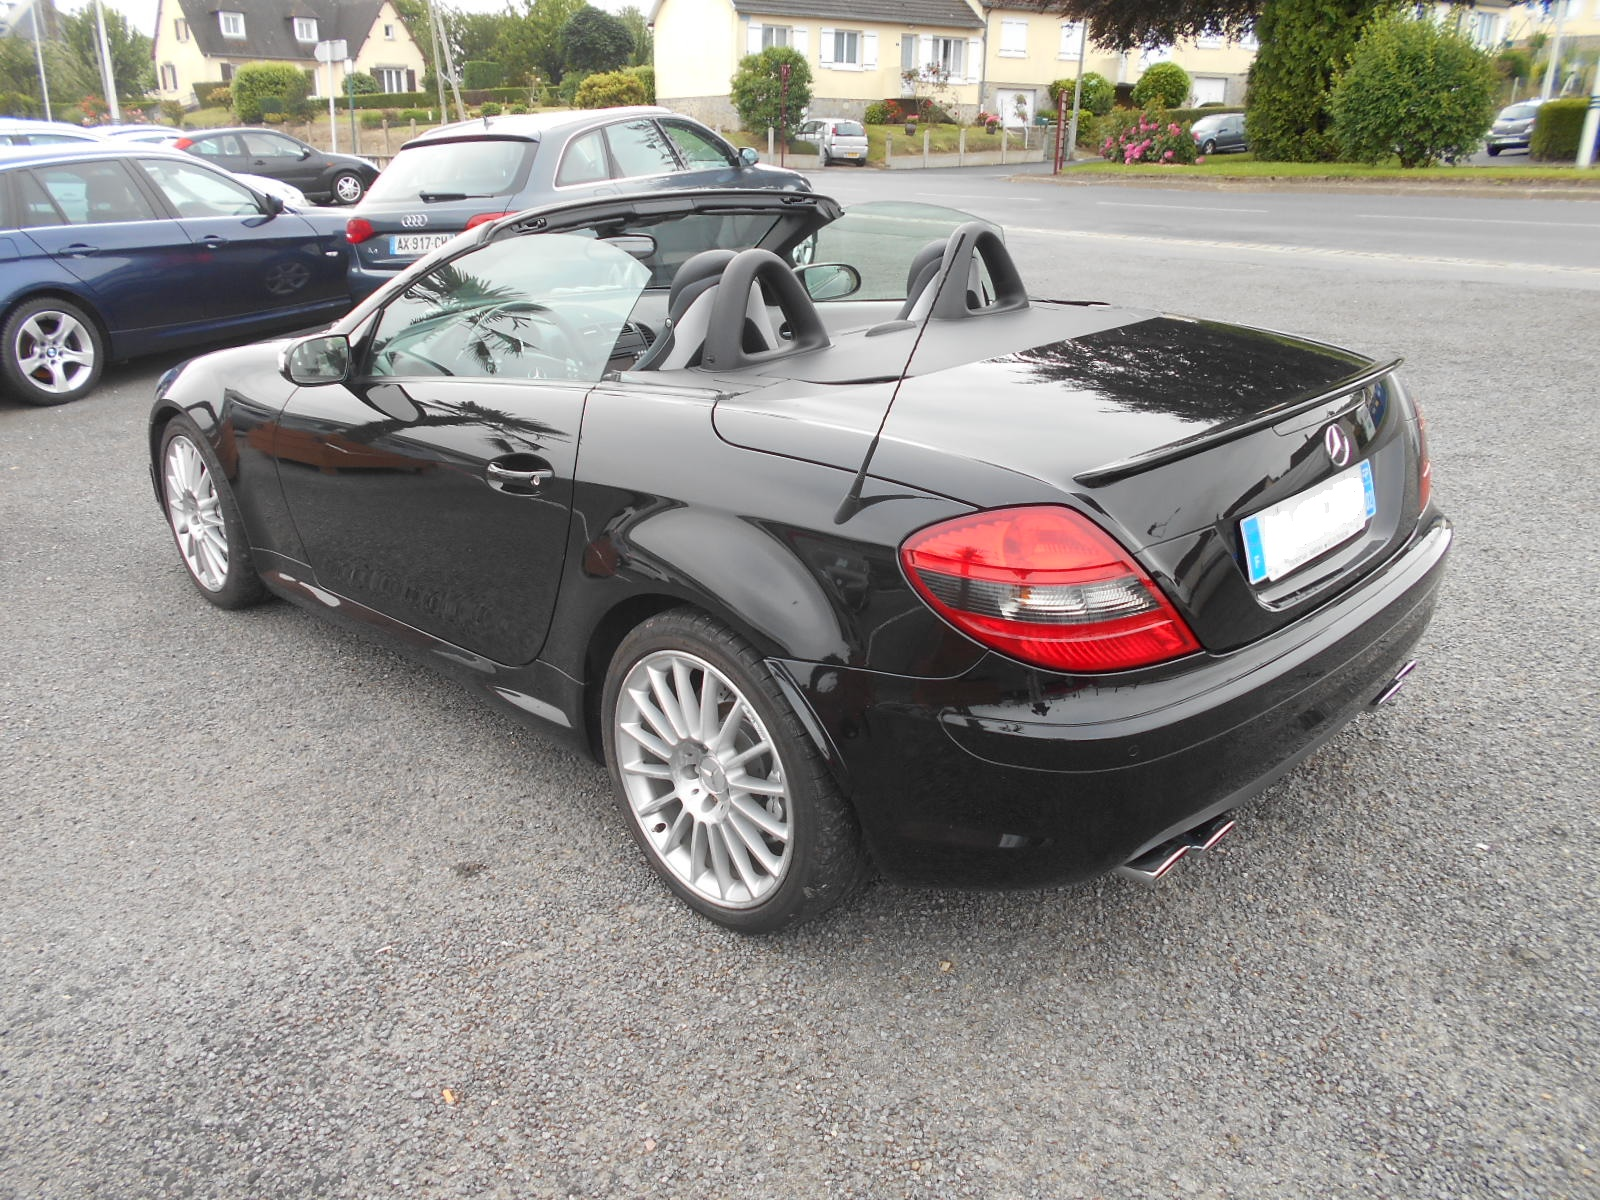 mercedes slk 55 amg 7g tronic serge have sport. Black Bedroom Furniture Sets. Home Design Ideas